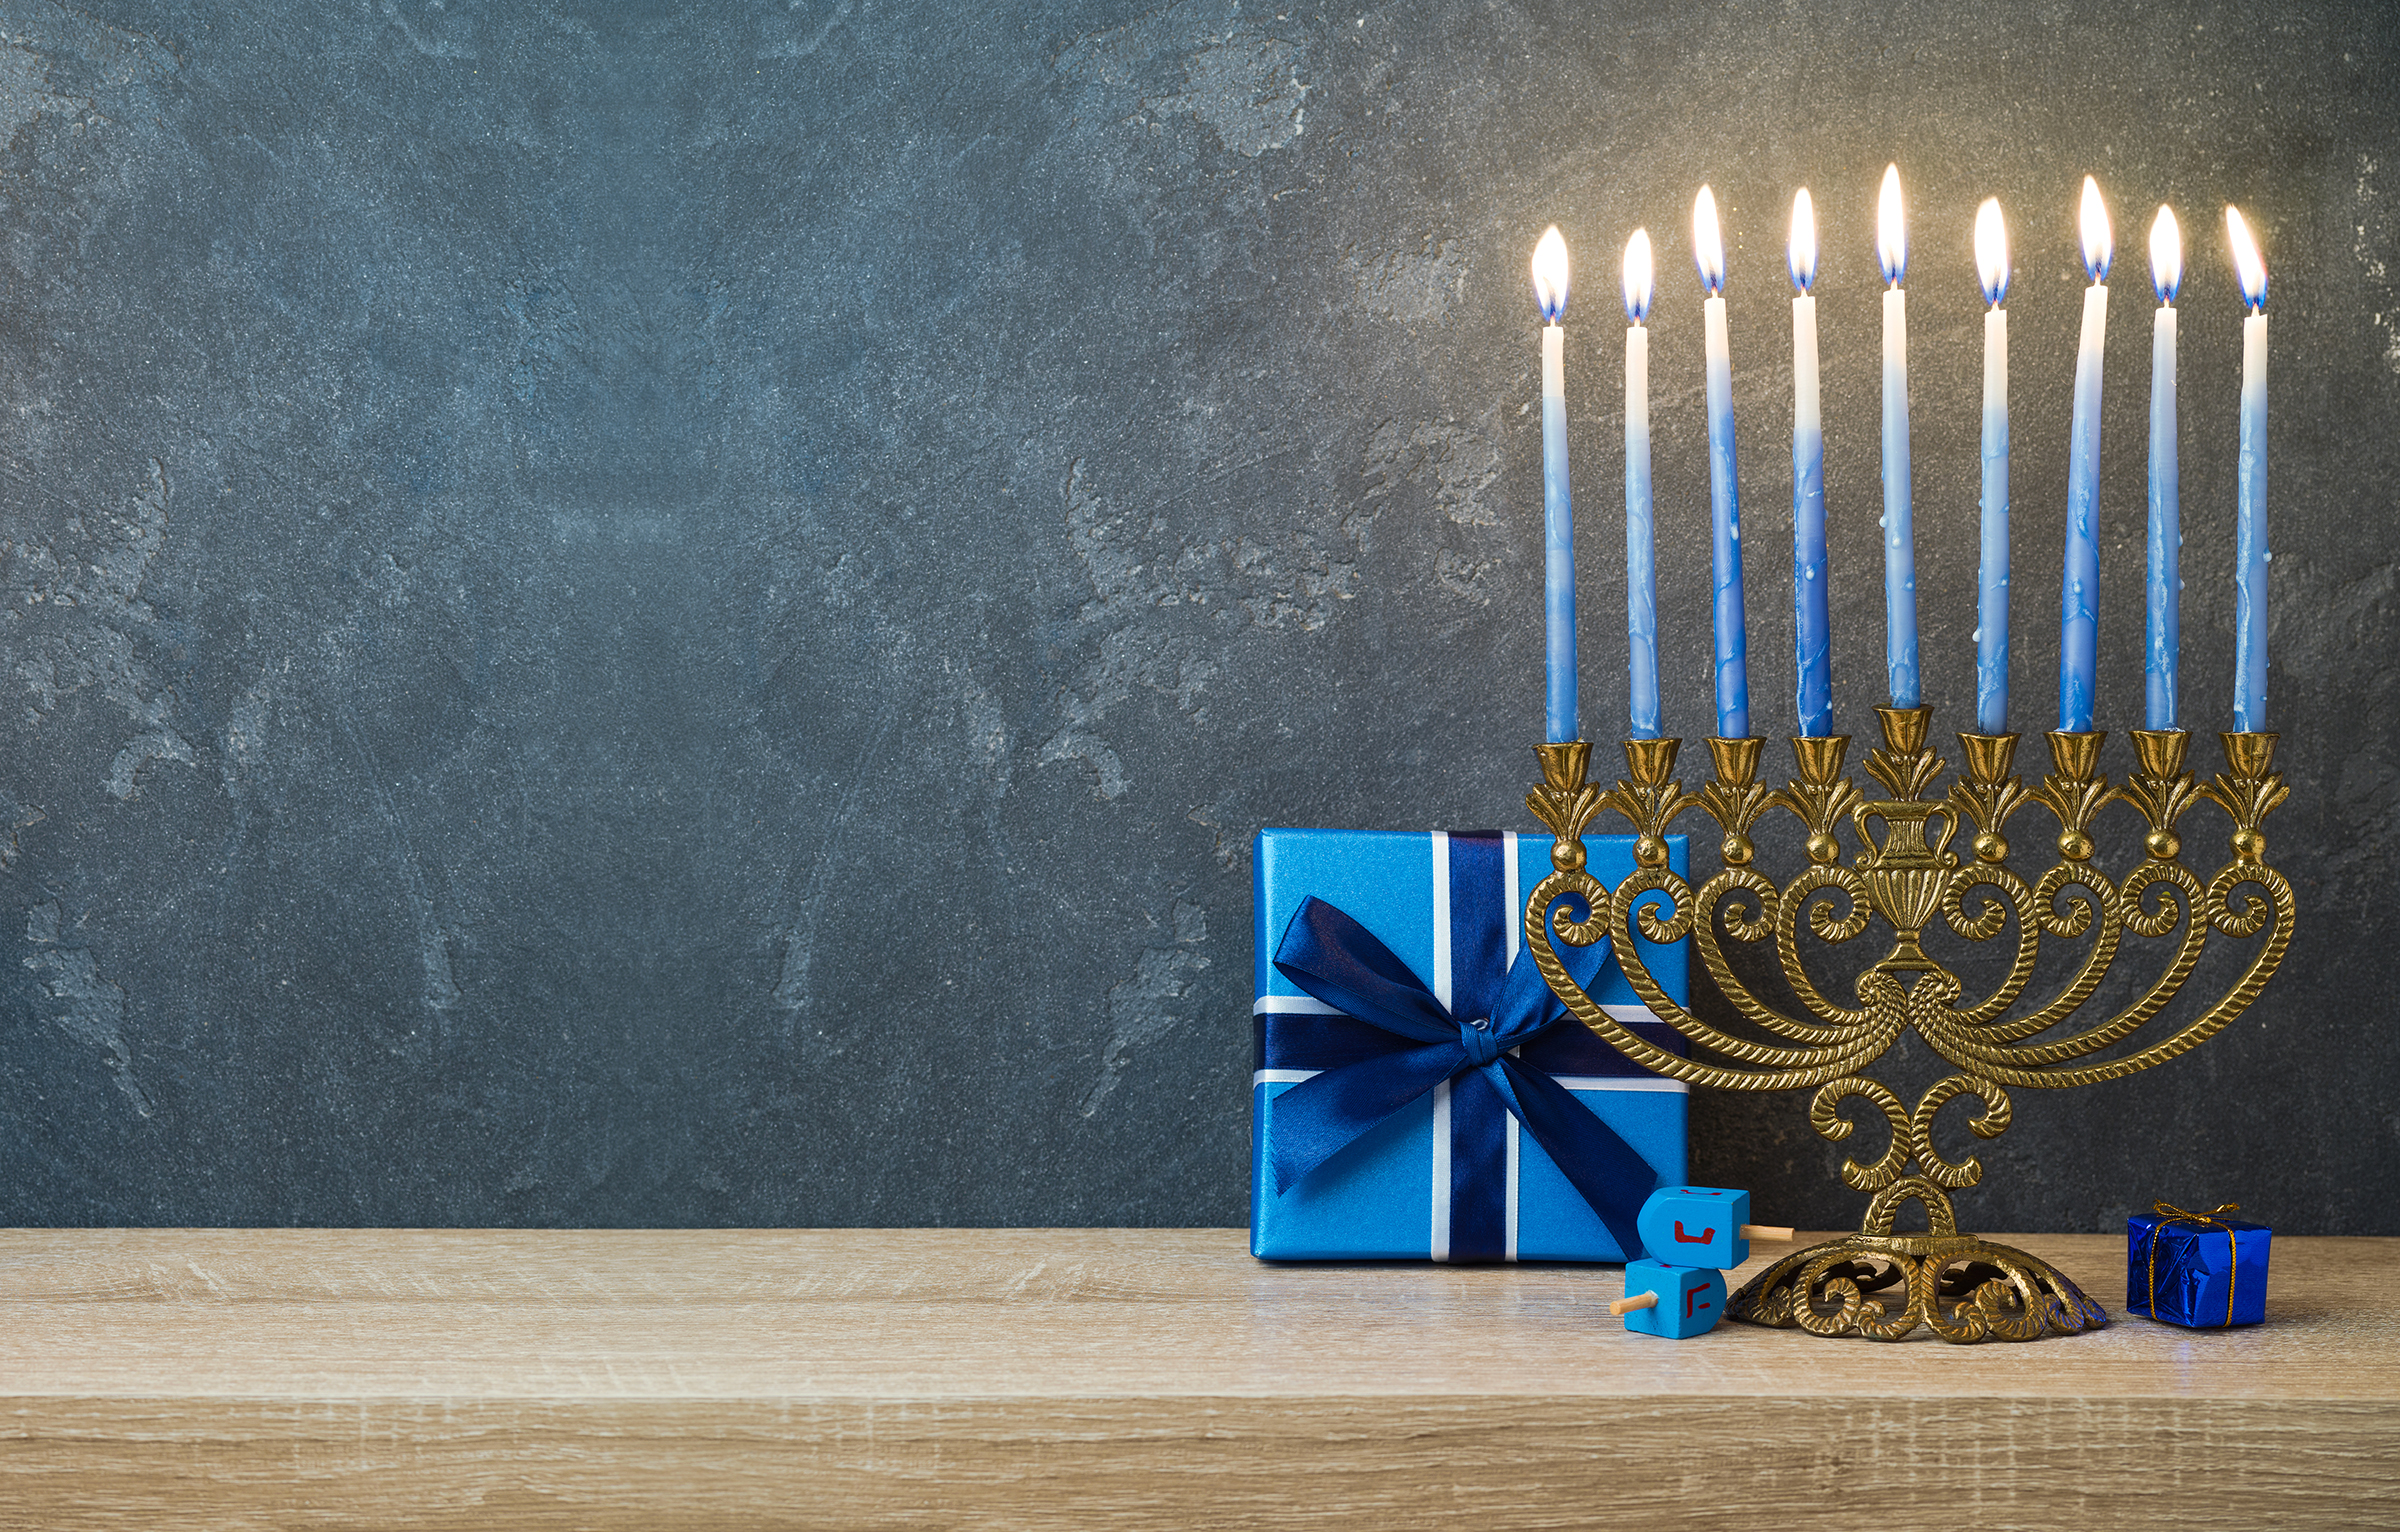 Hanukkah celebration with menorah, gift box and dreidel on wooden table over blackboard background